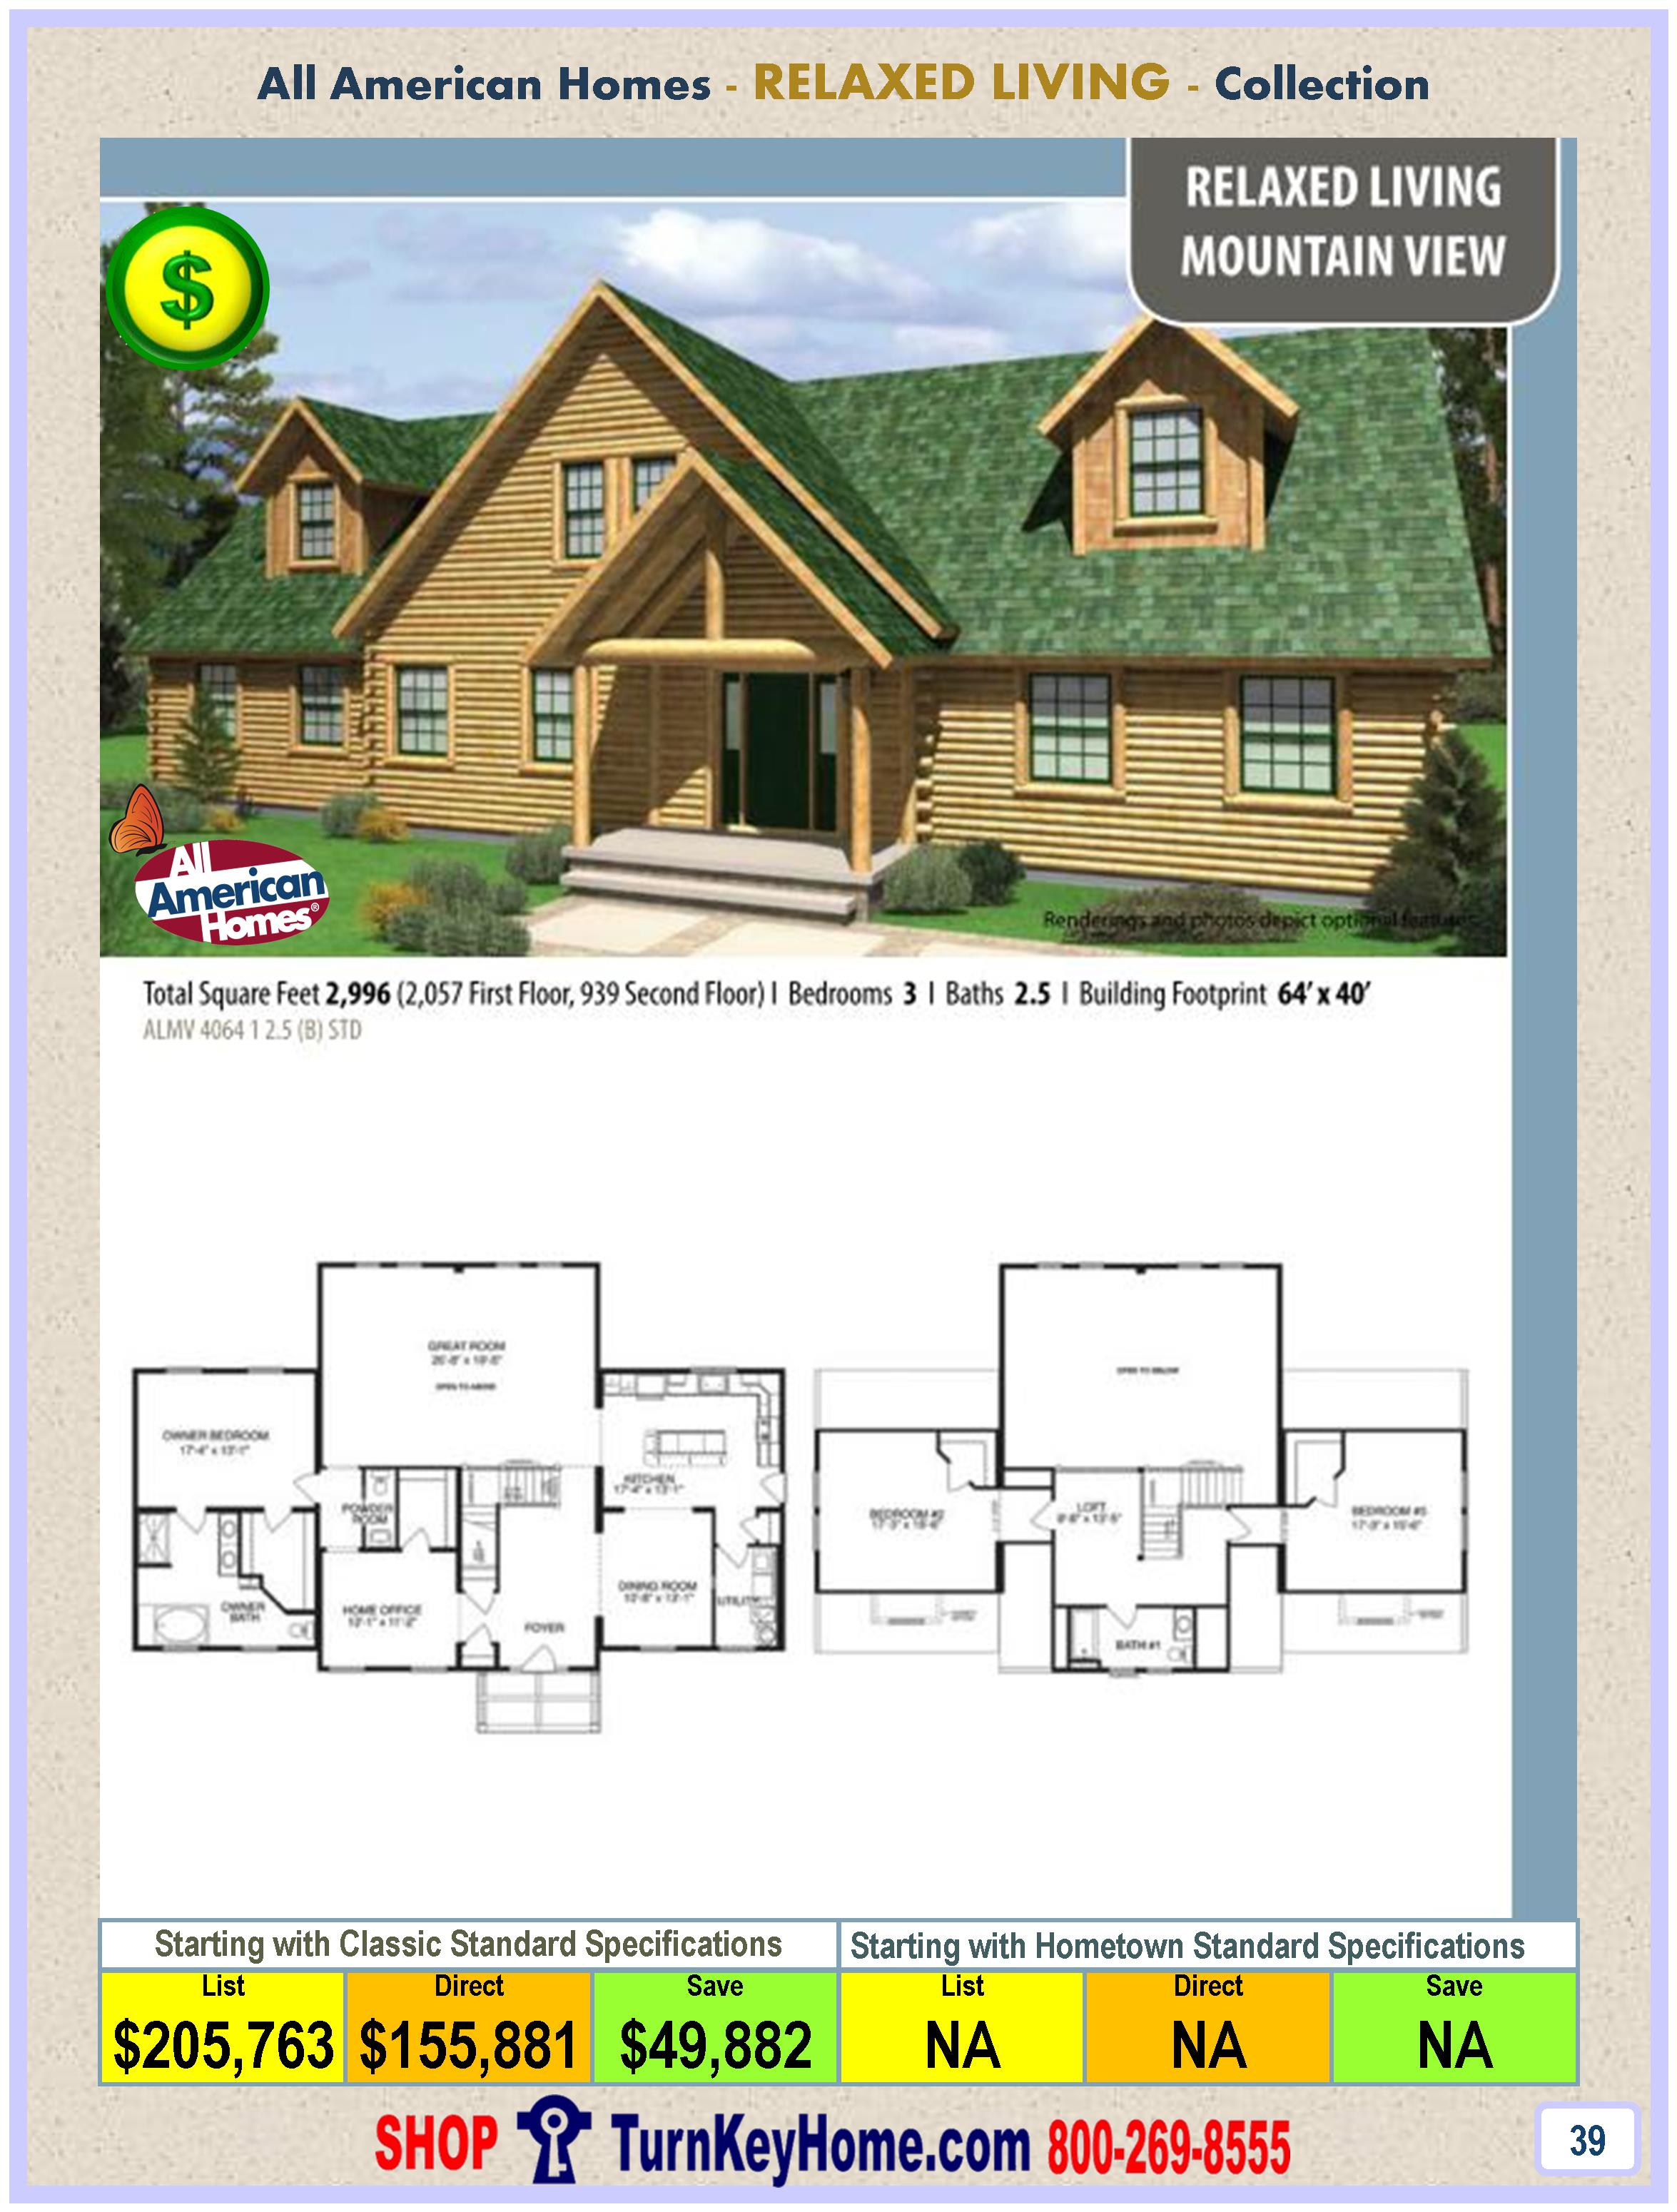 All American Homes mountain view all american modular home home relaxed living